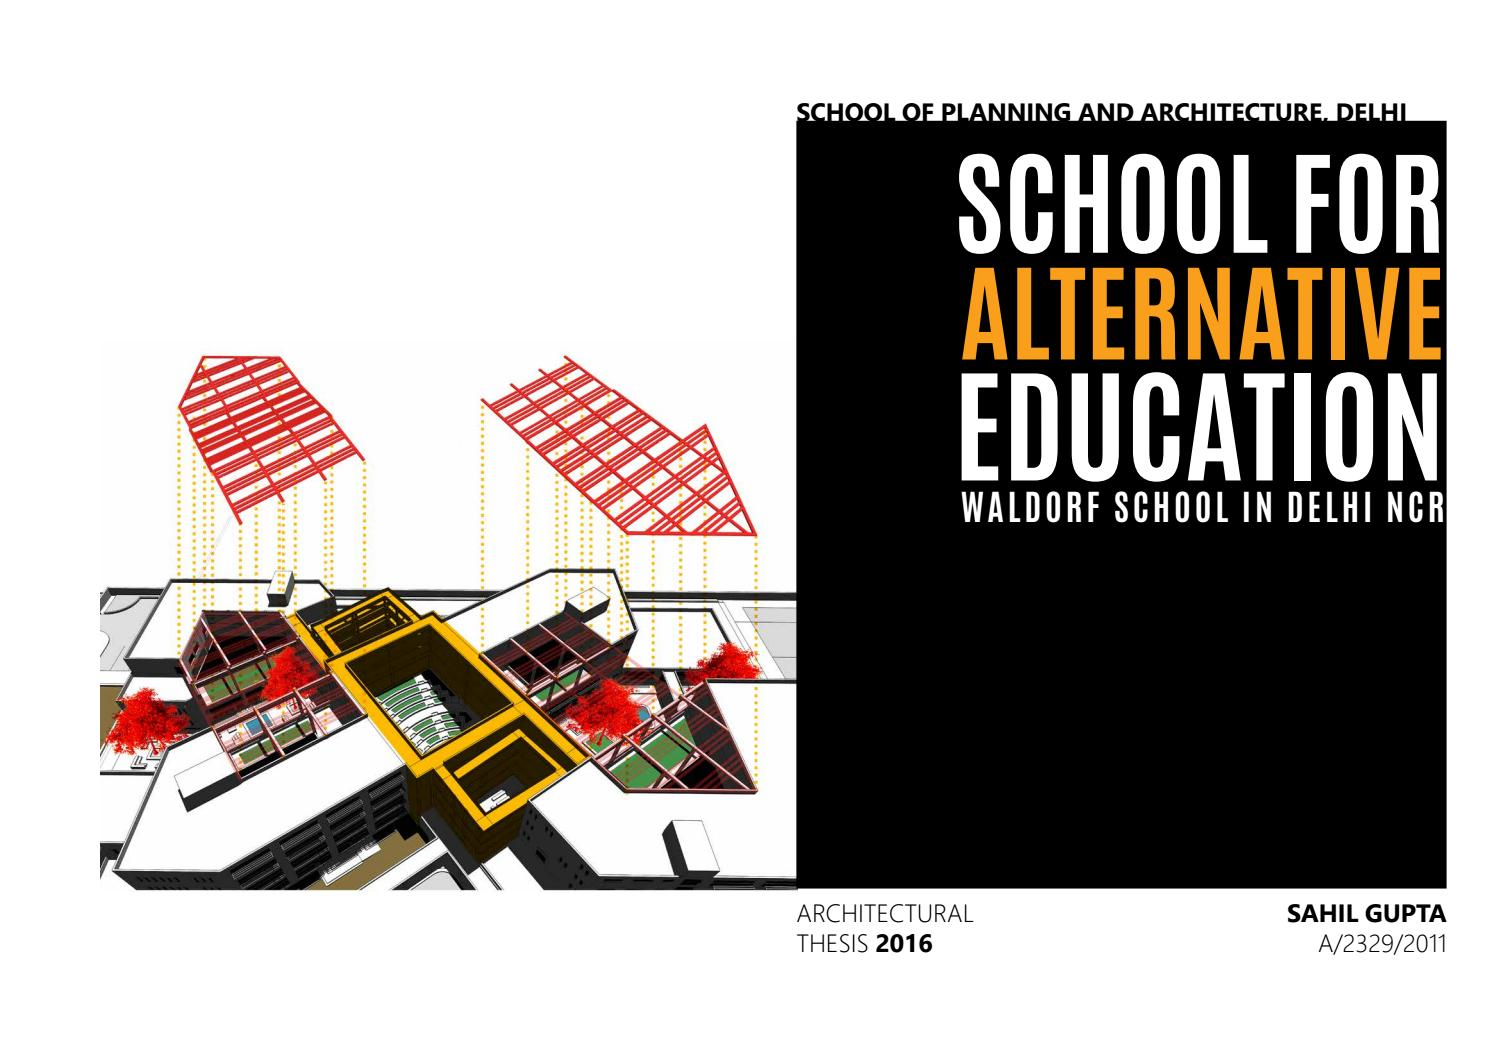 School For Alternative Education A Waldorf School In Delhi Ncr By Sahil Gupta Issuu